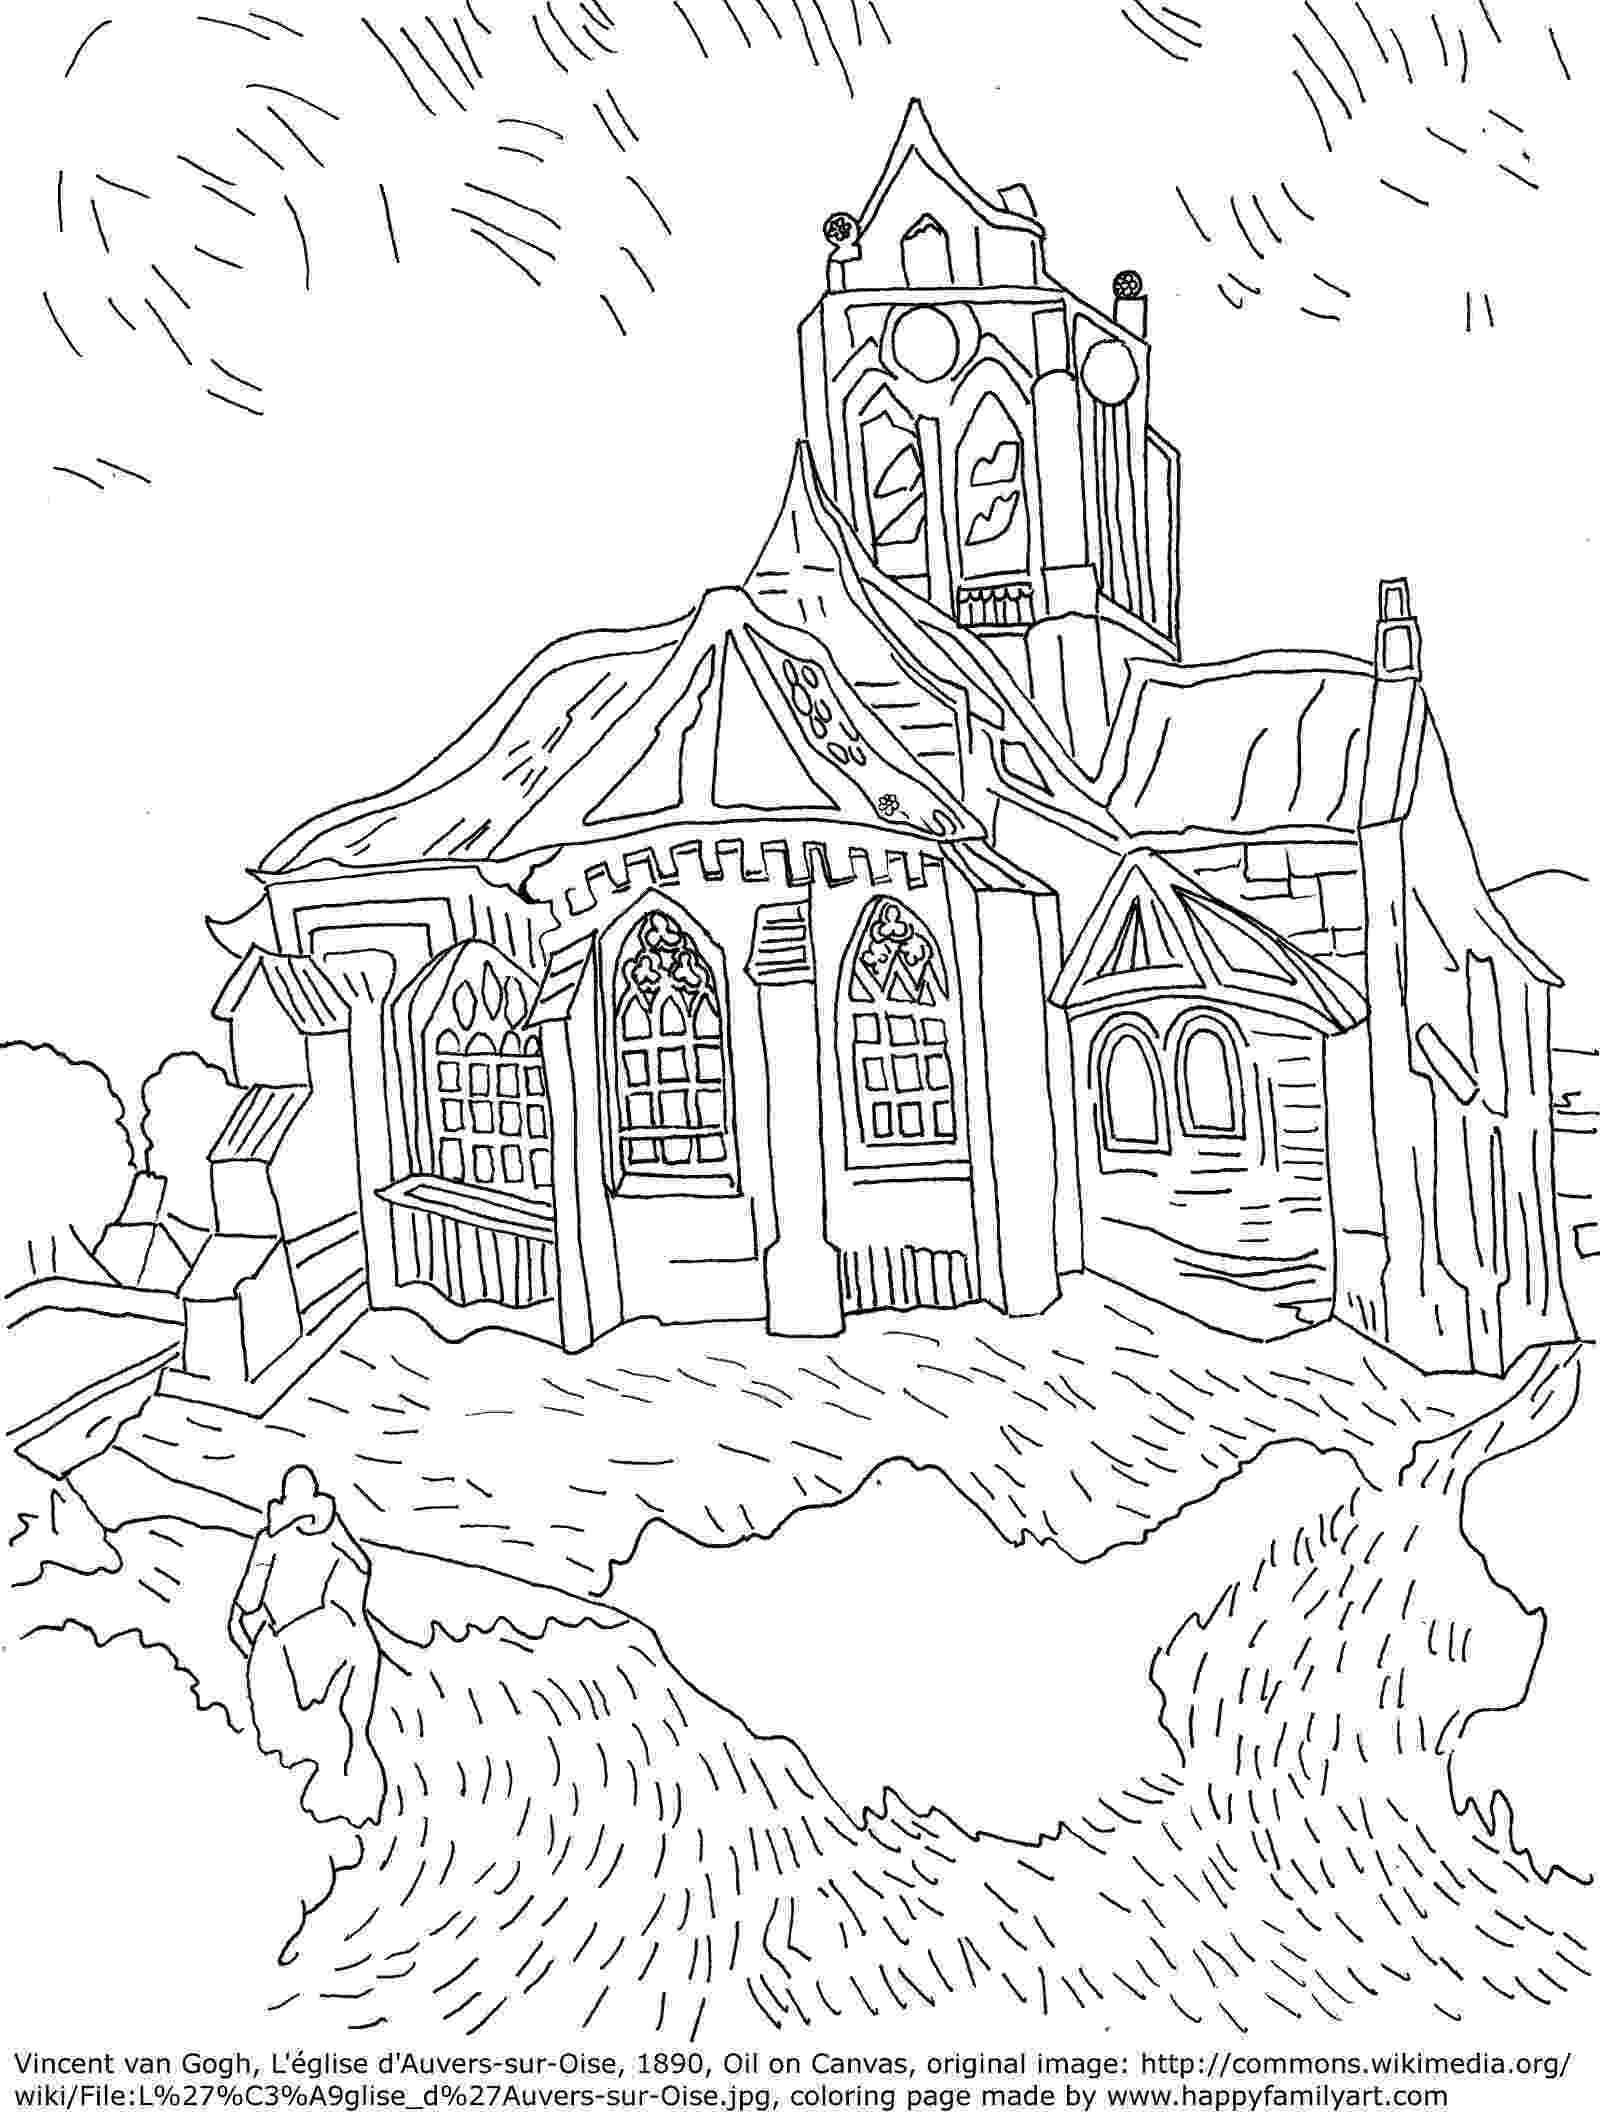 famous painting coloring pages happy family art original and fun coloring pages painting coloring famous pages